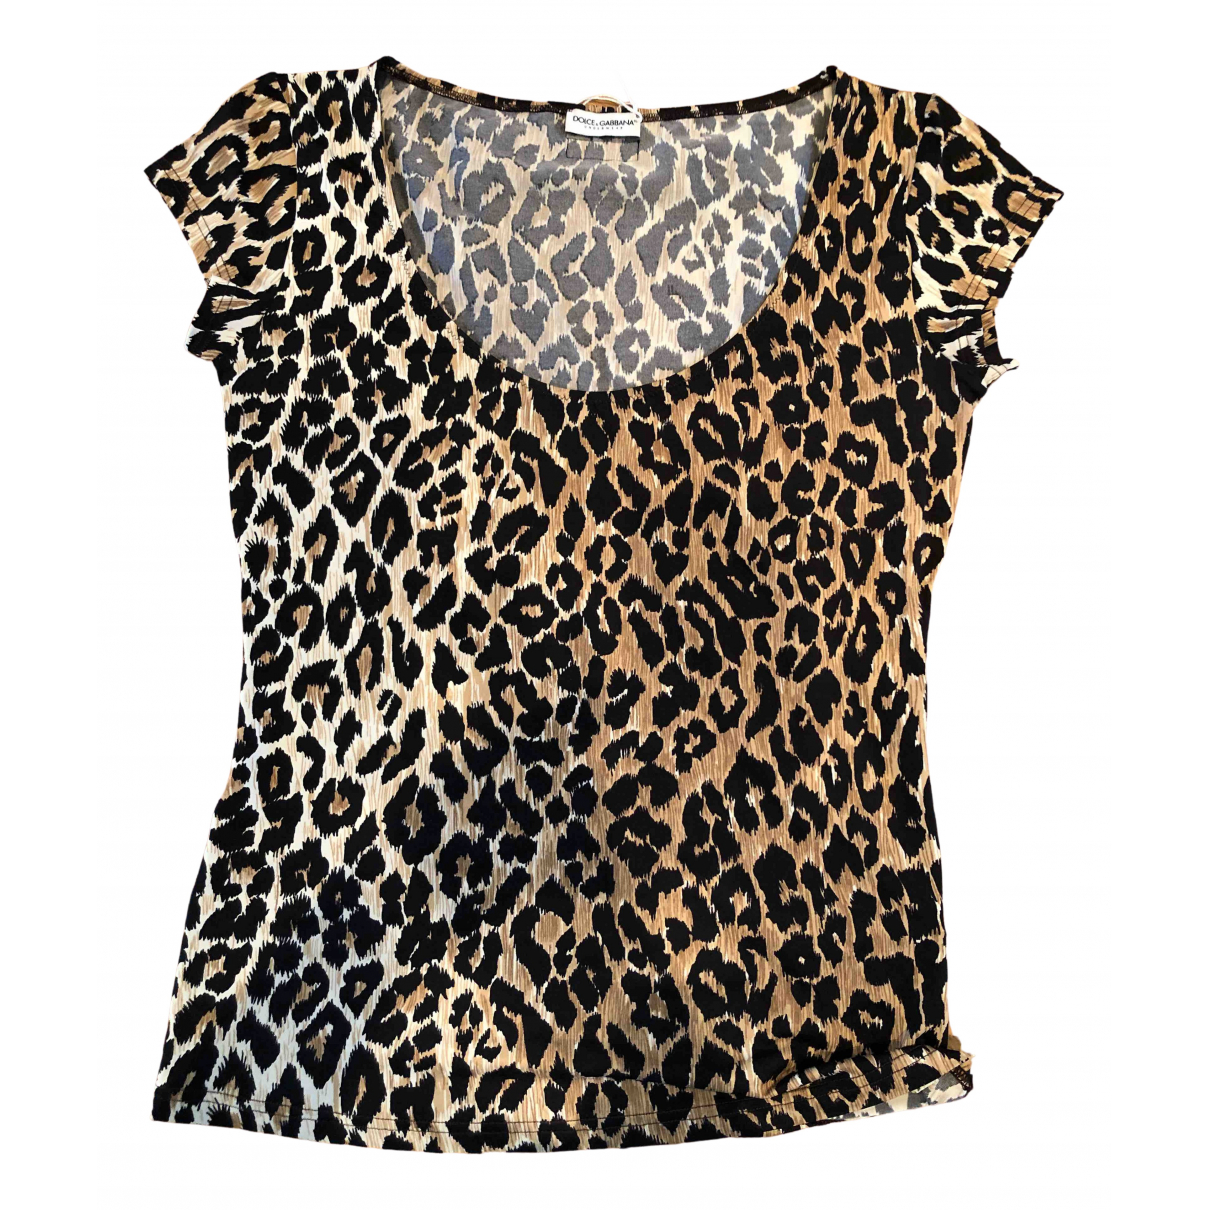 Dolce & Gabbana \N Brown  top for Women 38 FR